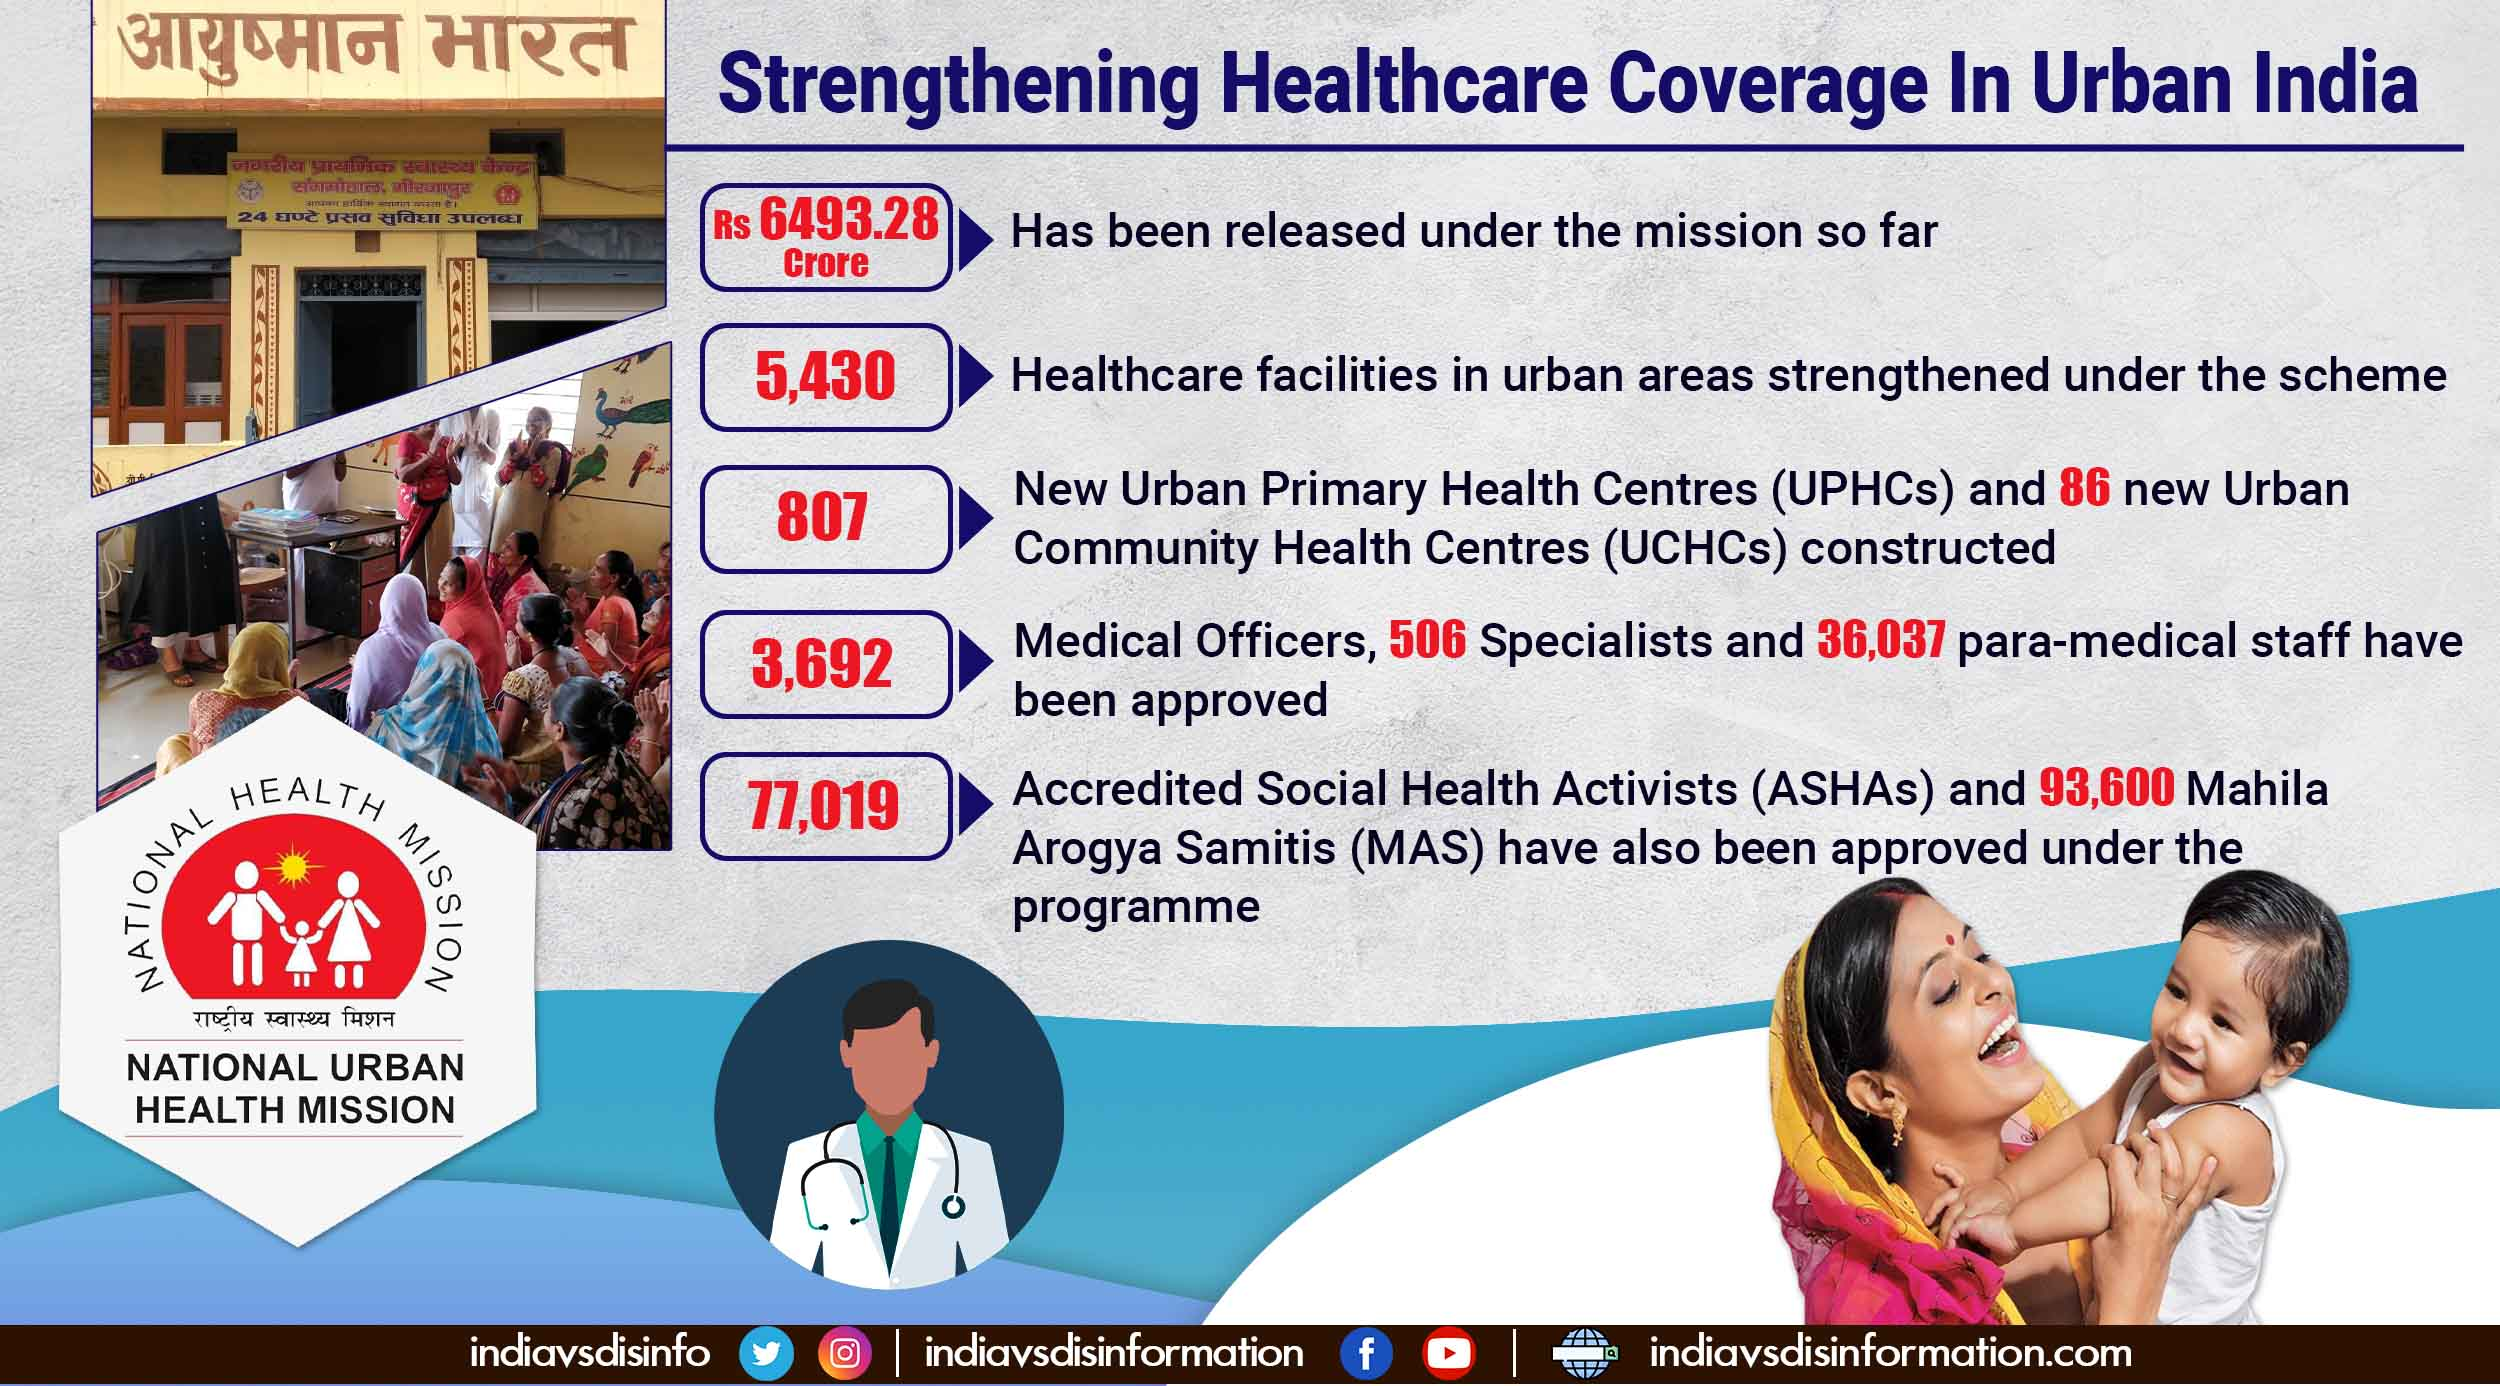 Over 5,000 healthcare facilities strengthened under National Urban Health Mission